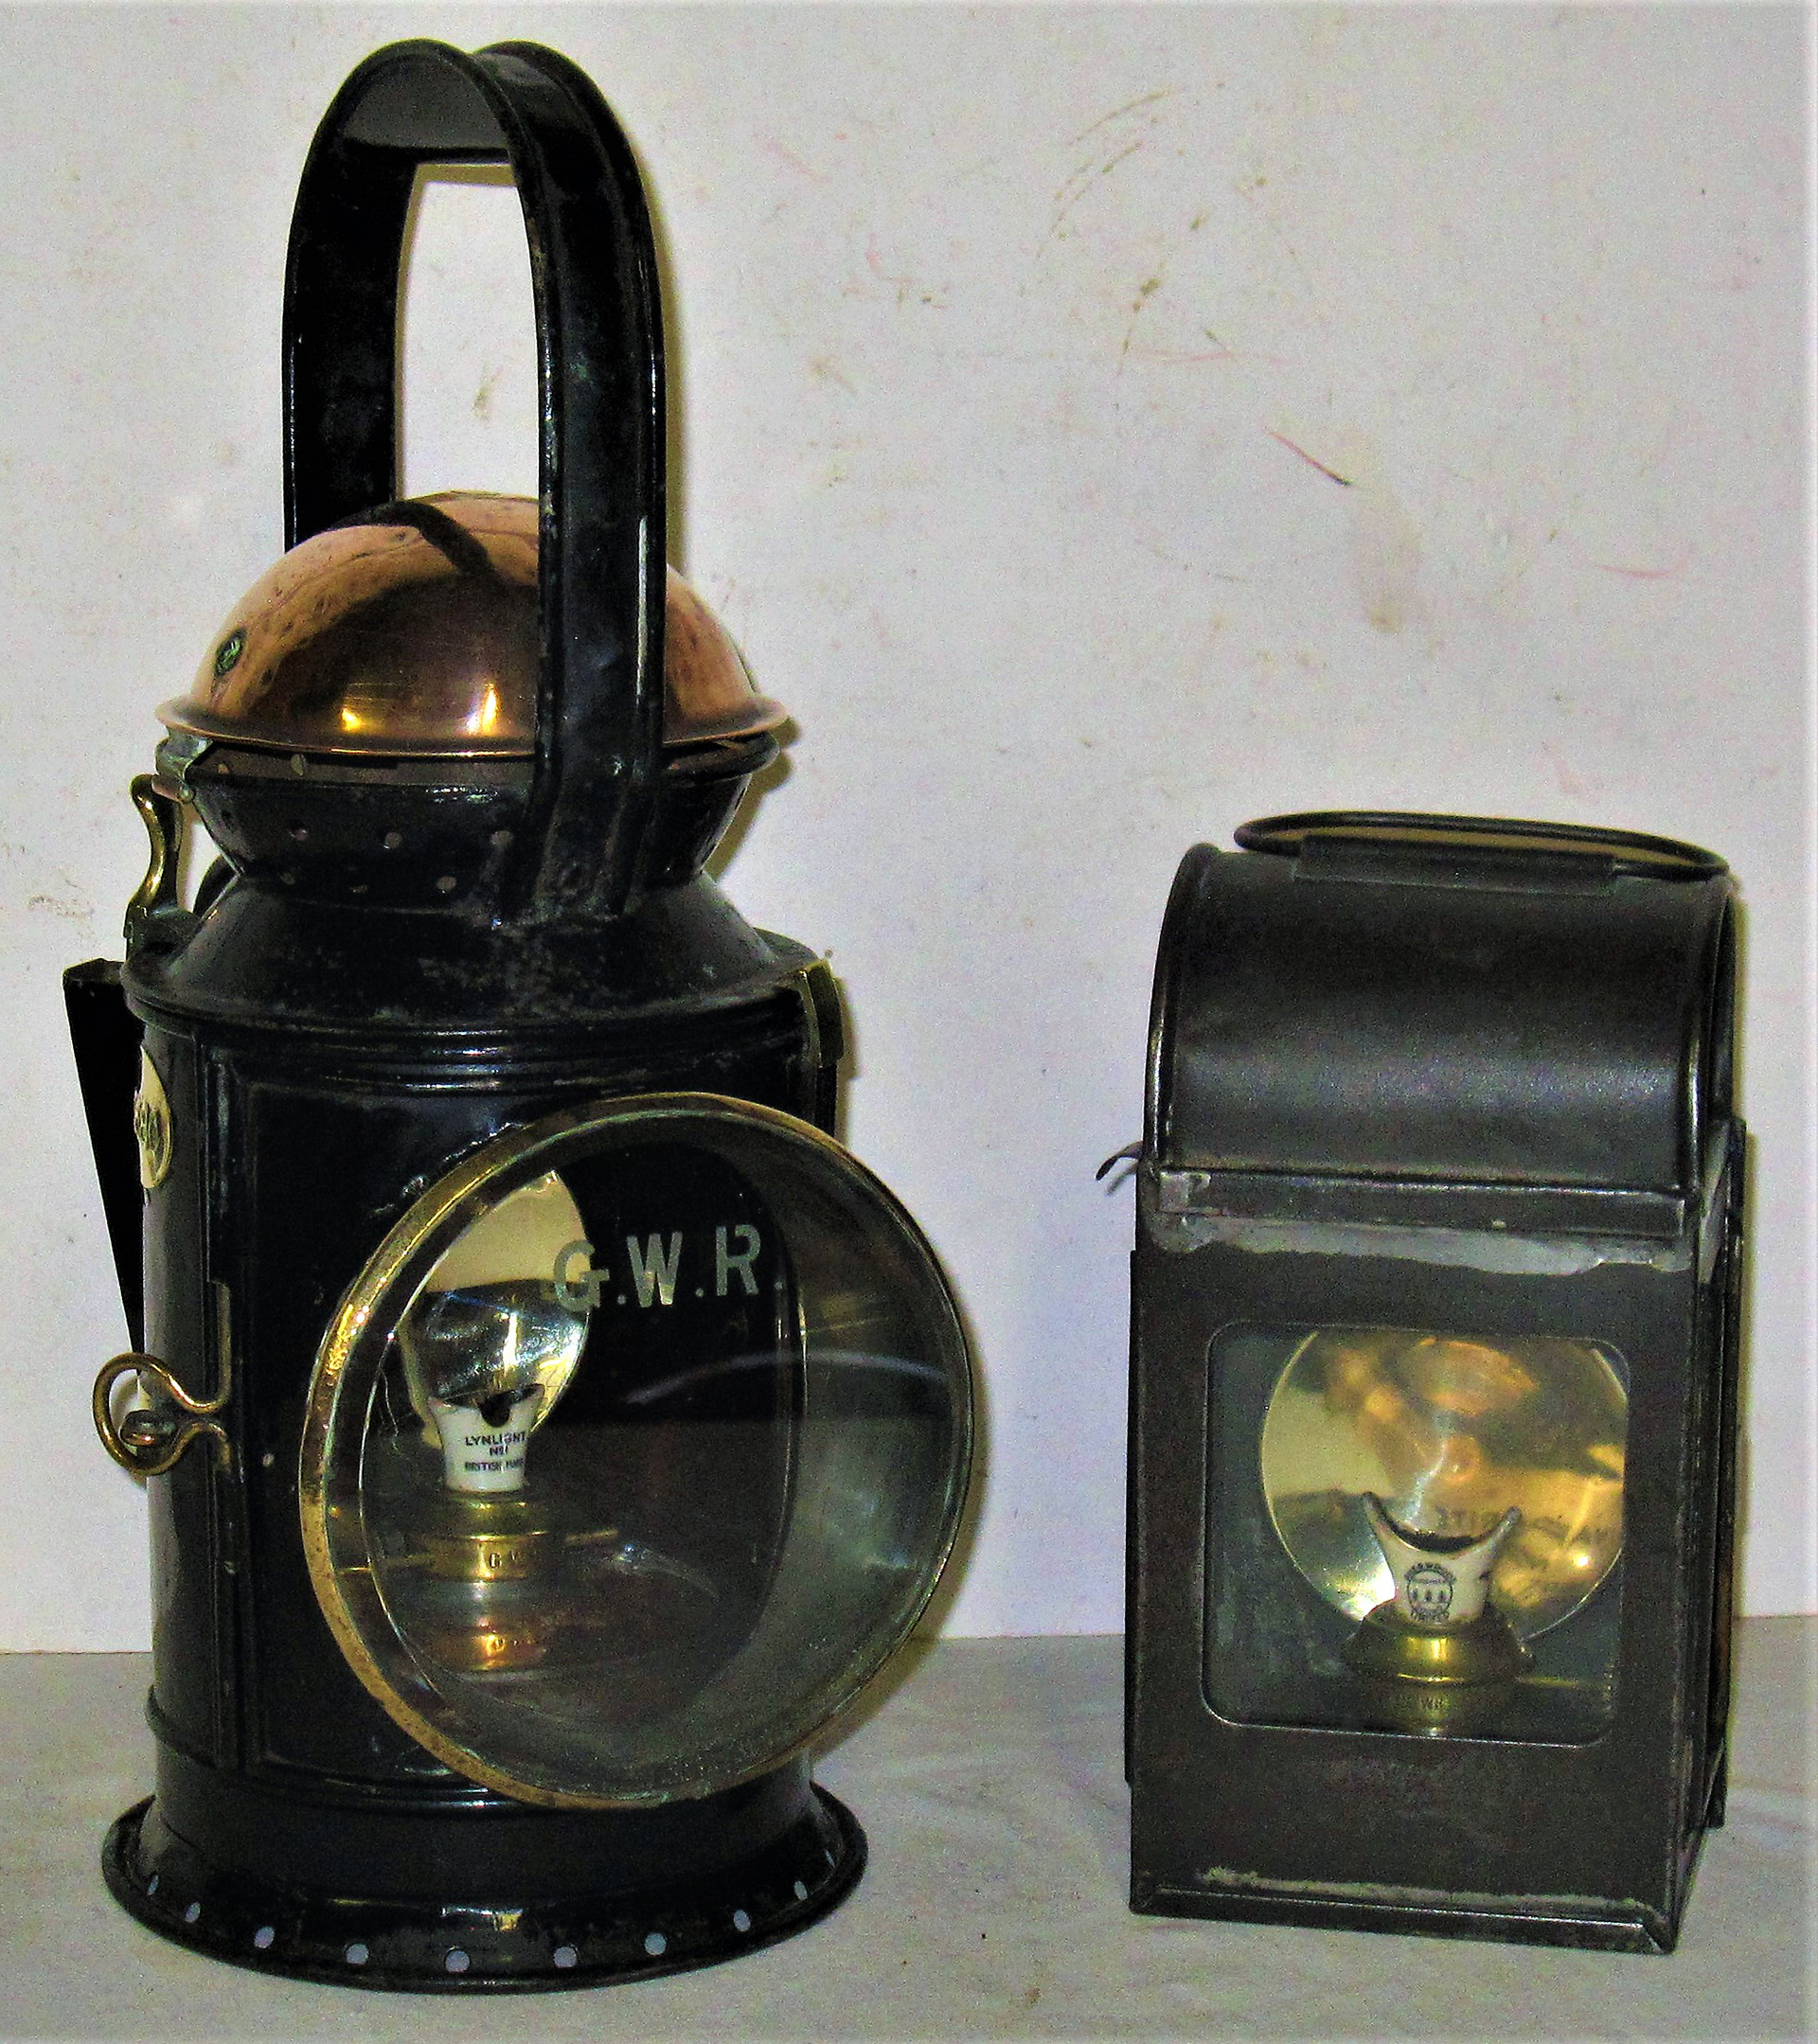 GWR pre grouping copper top Handlamp complete with GWR front glass, colour filters, vessel and